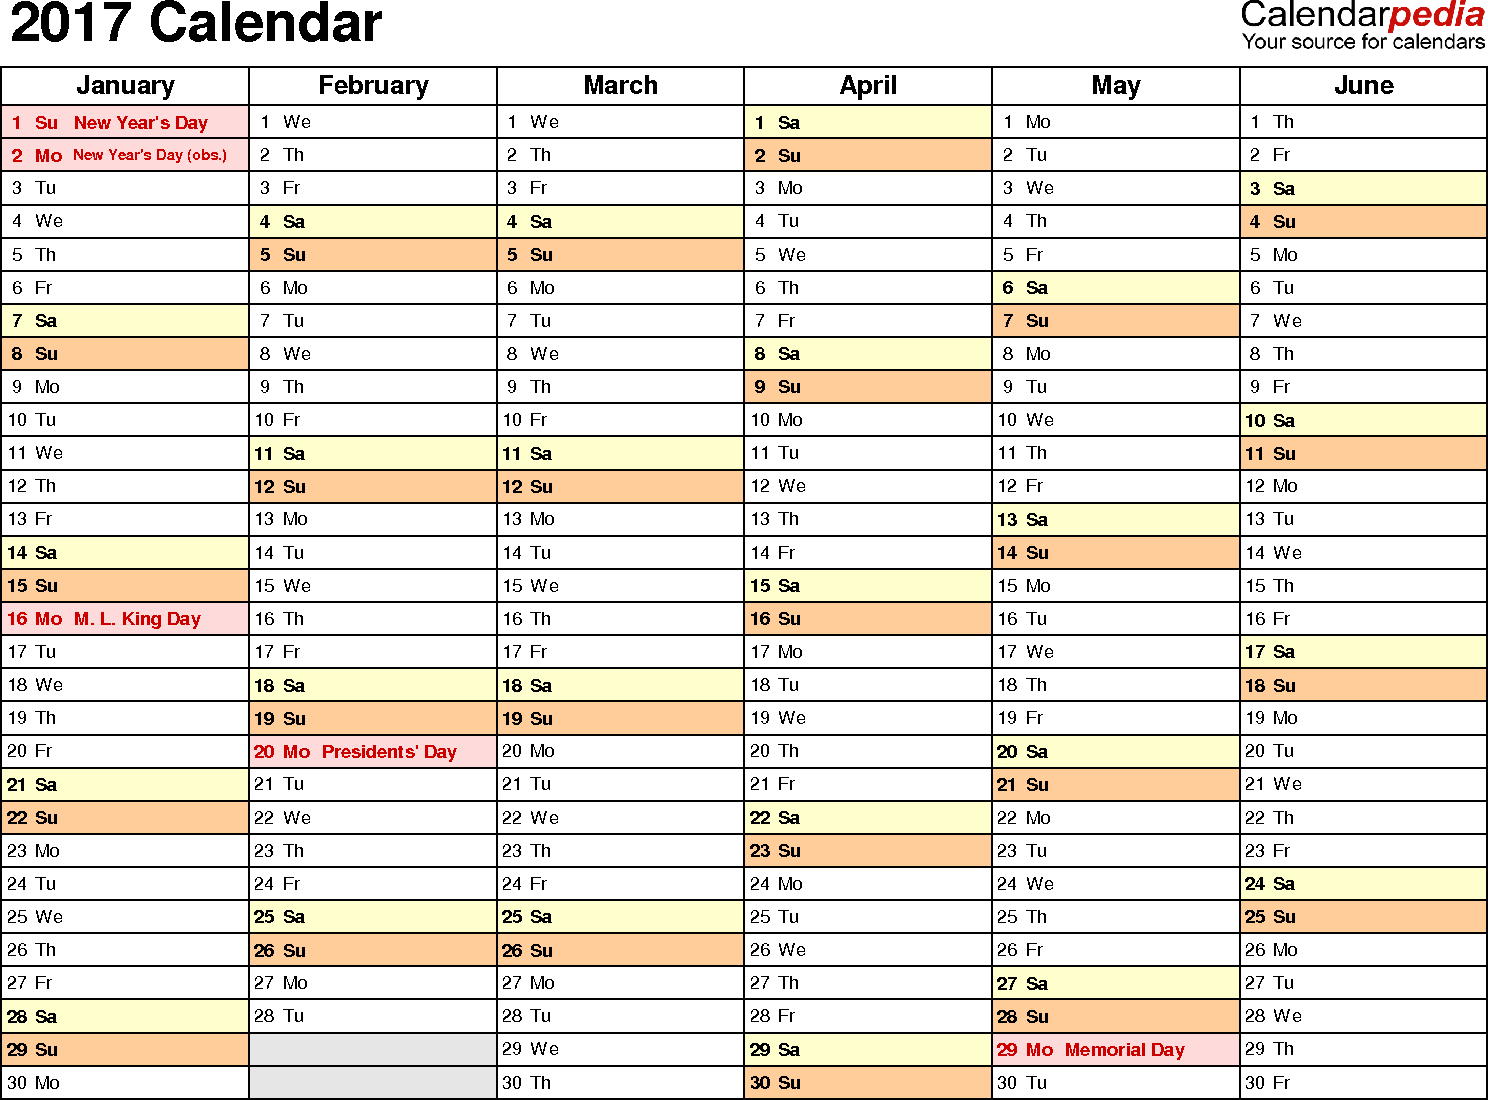 Ediblewildsus  Pleasant  Calendar  Download  Free Printable Excel Templates Xls With Goodlooking Template   Calendar For Excel Months Horizontally  Pages Landscape Orientation With Astonishing Distinct In Excel Also Data Analysis Toolpak Excel Mac In Addition How To Wrap Text On Excel And Excel Education As Well As Excel Formulas Chart Additionally Excel  Secondary Axis From Calendarpediacom With Ediblewildsus  Goodlooking  Calendar  Download  Free Printable Excel Templates Xls With Astonishing Template   Calendar For Excel Months Horizontally  Pages Landscape Orientation And Pleasant Distinct In Excel Also Data Analysis Toolpak Excel Mac In Addition How To Wrap Text On Excel From Calendarpediacom